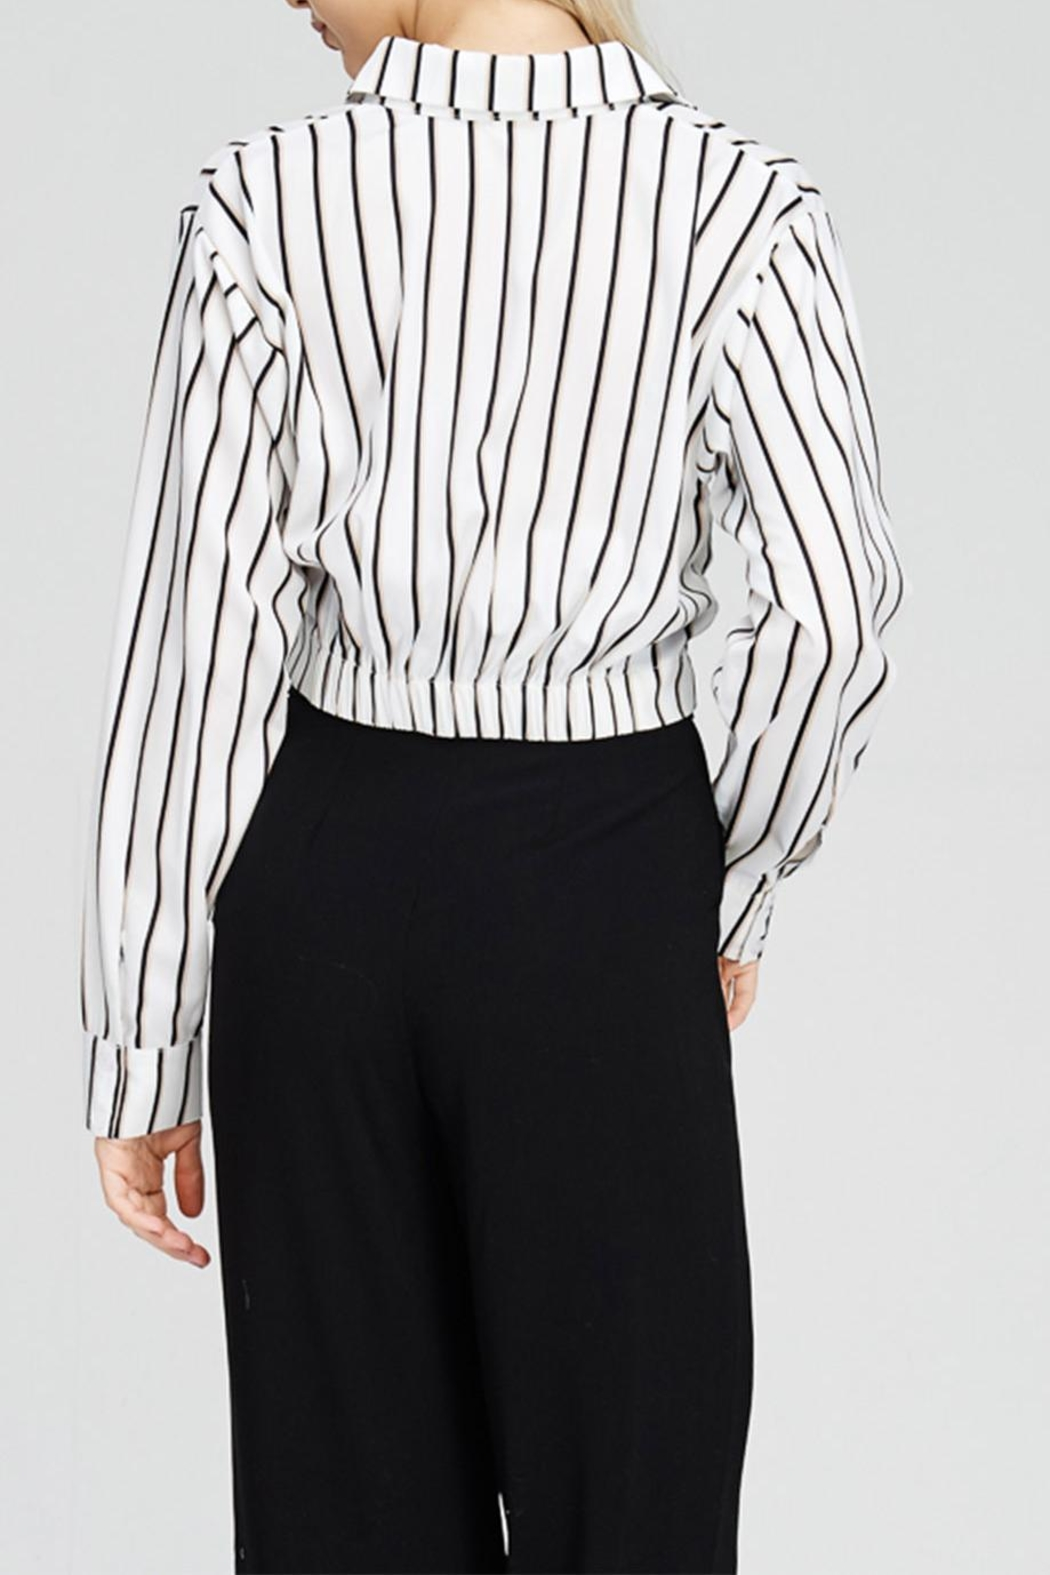 Emory Park Stripe Button Down - Front Full Image